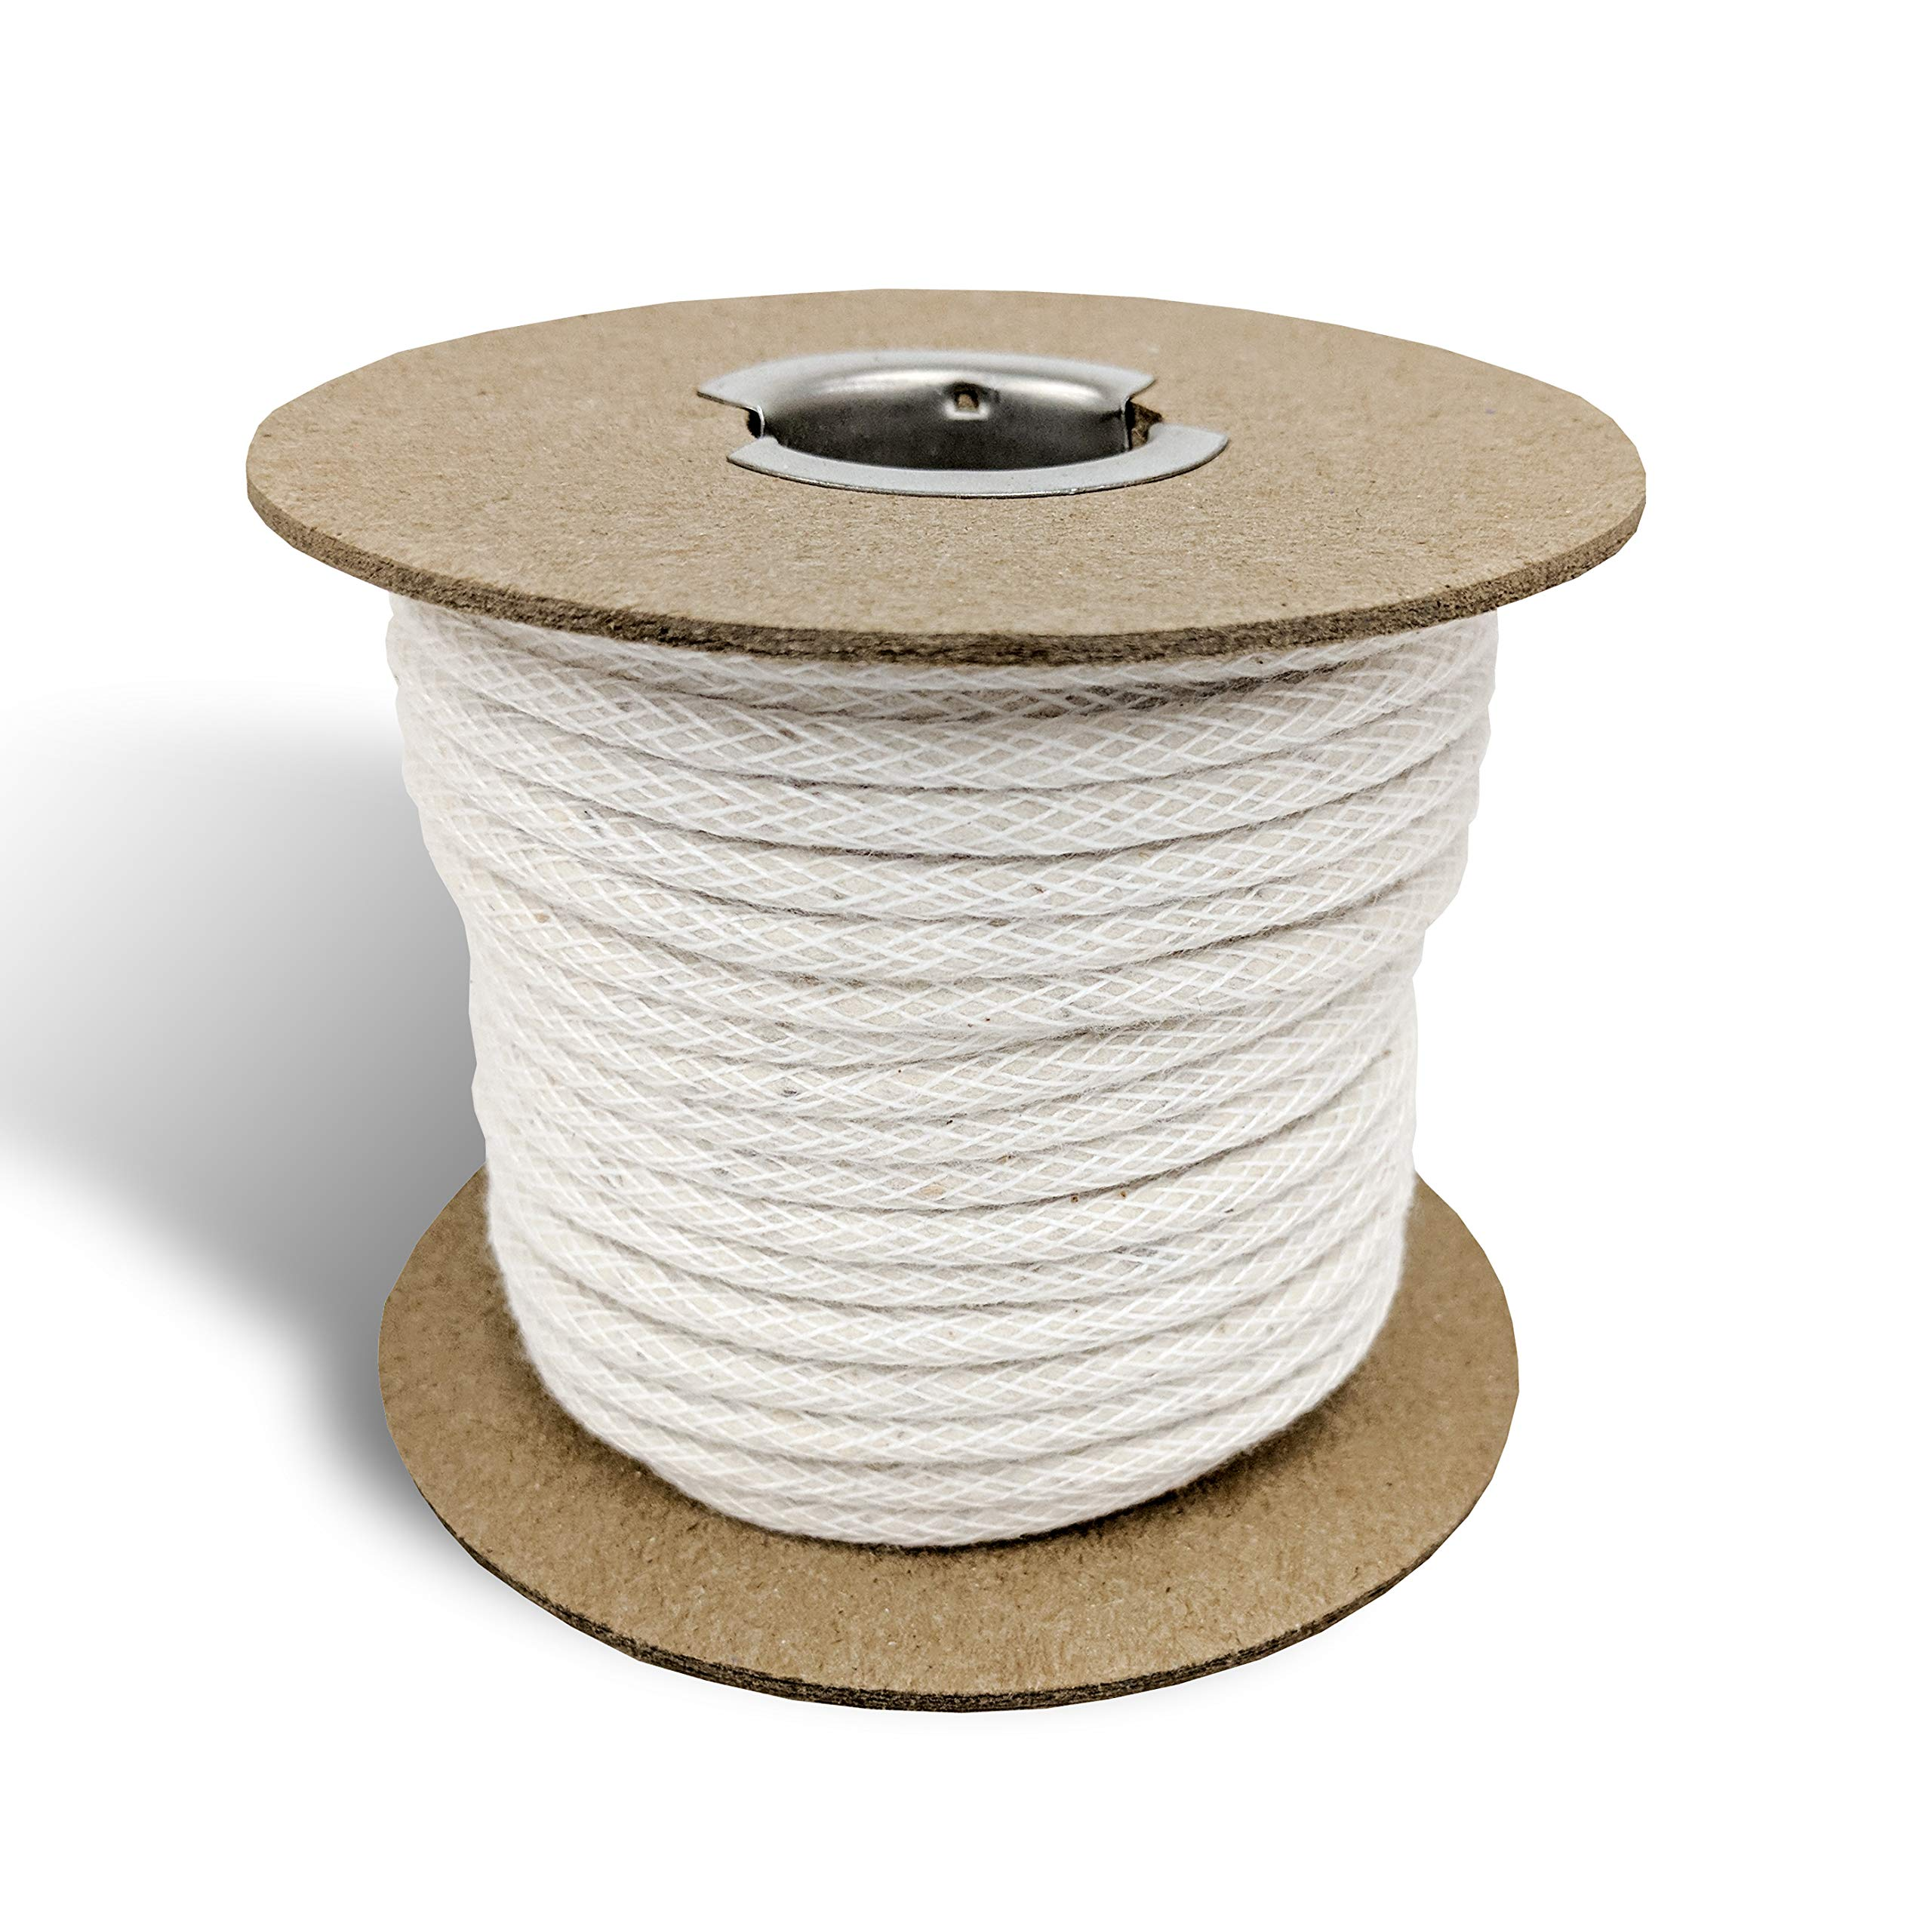 Upholstery Cotton Piping Welt Cord for Furniture/Crafts, 25yd Spool- Made in USA by Wholesale Upholstery Supply